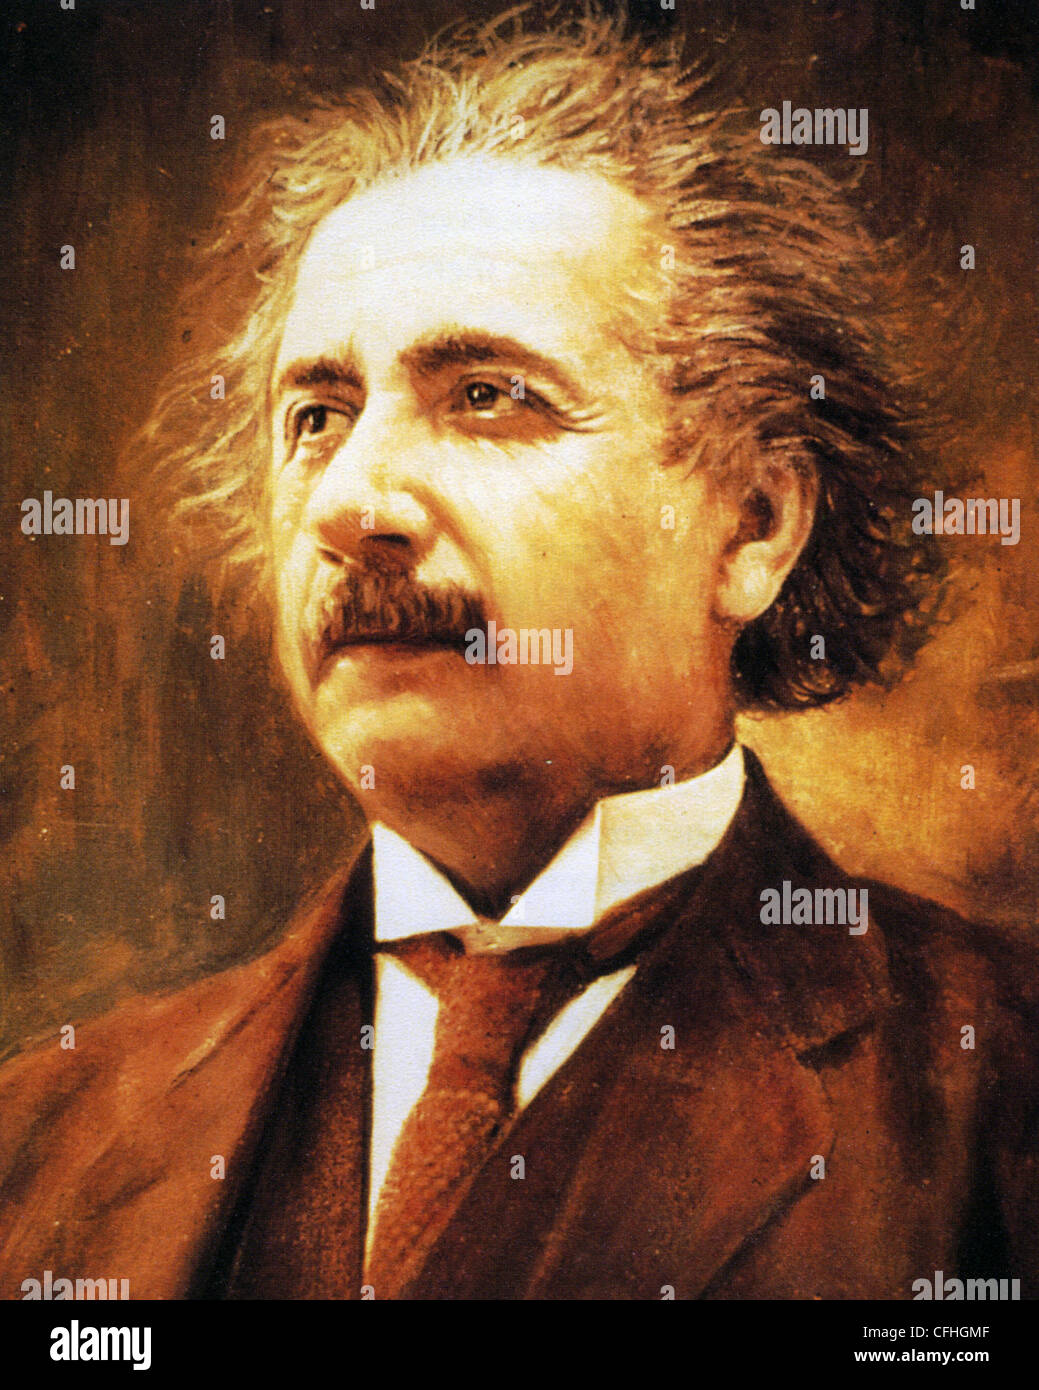 ALBERT EINSTEIN (1879-1955) German-born theoretical physicist Stock Photo